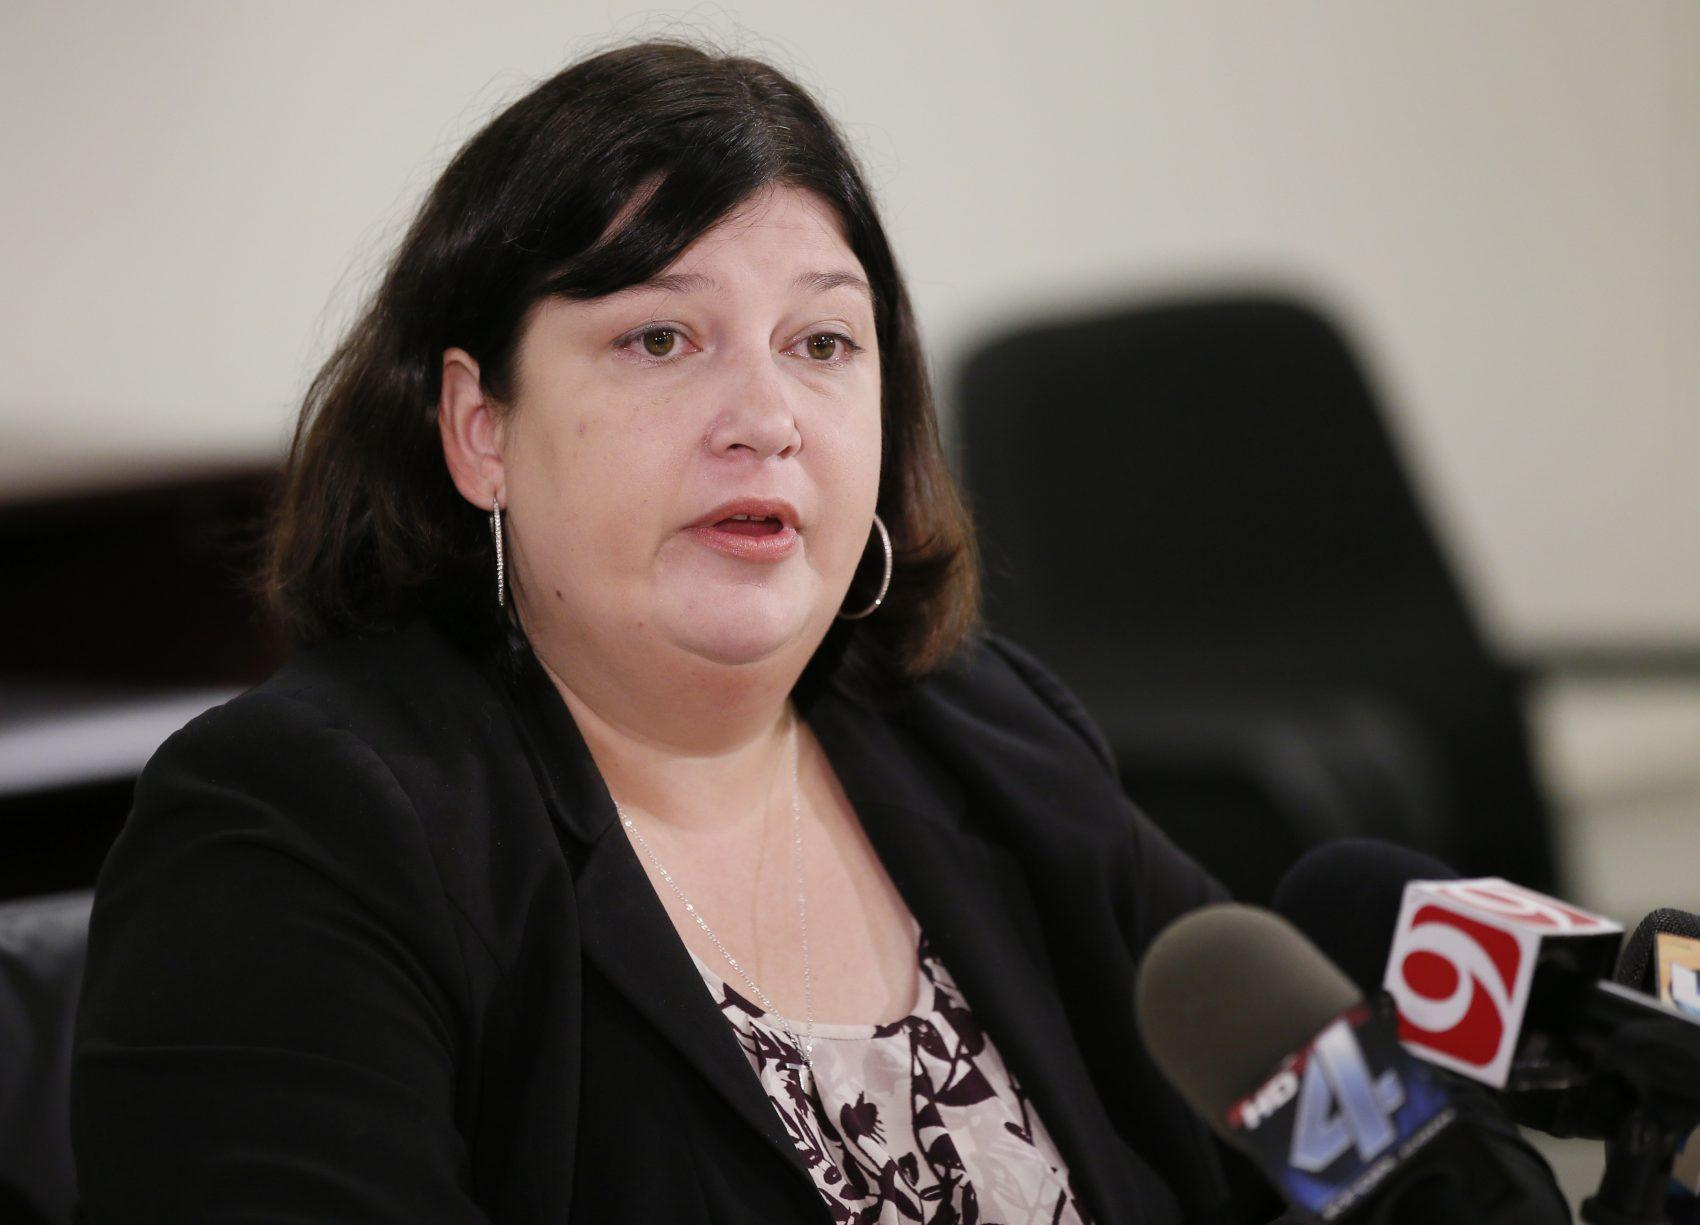 In Conservative Oklahoma, Schools Chief Says DACA's End Will